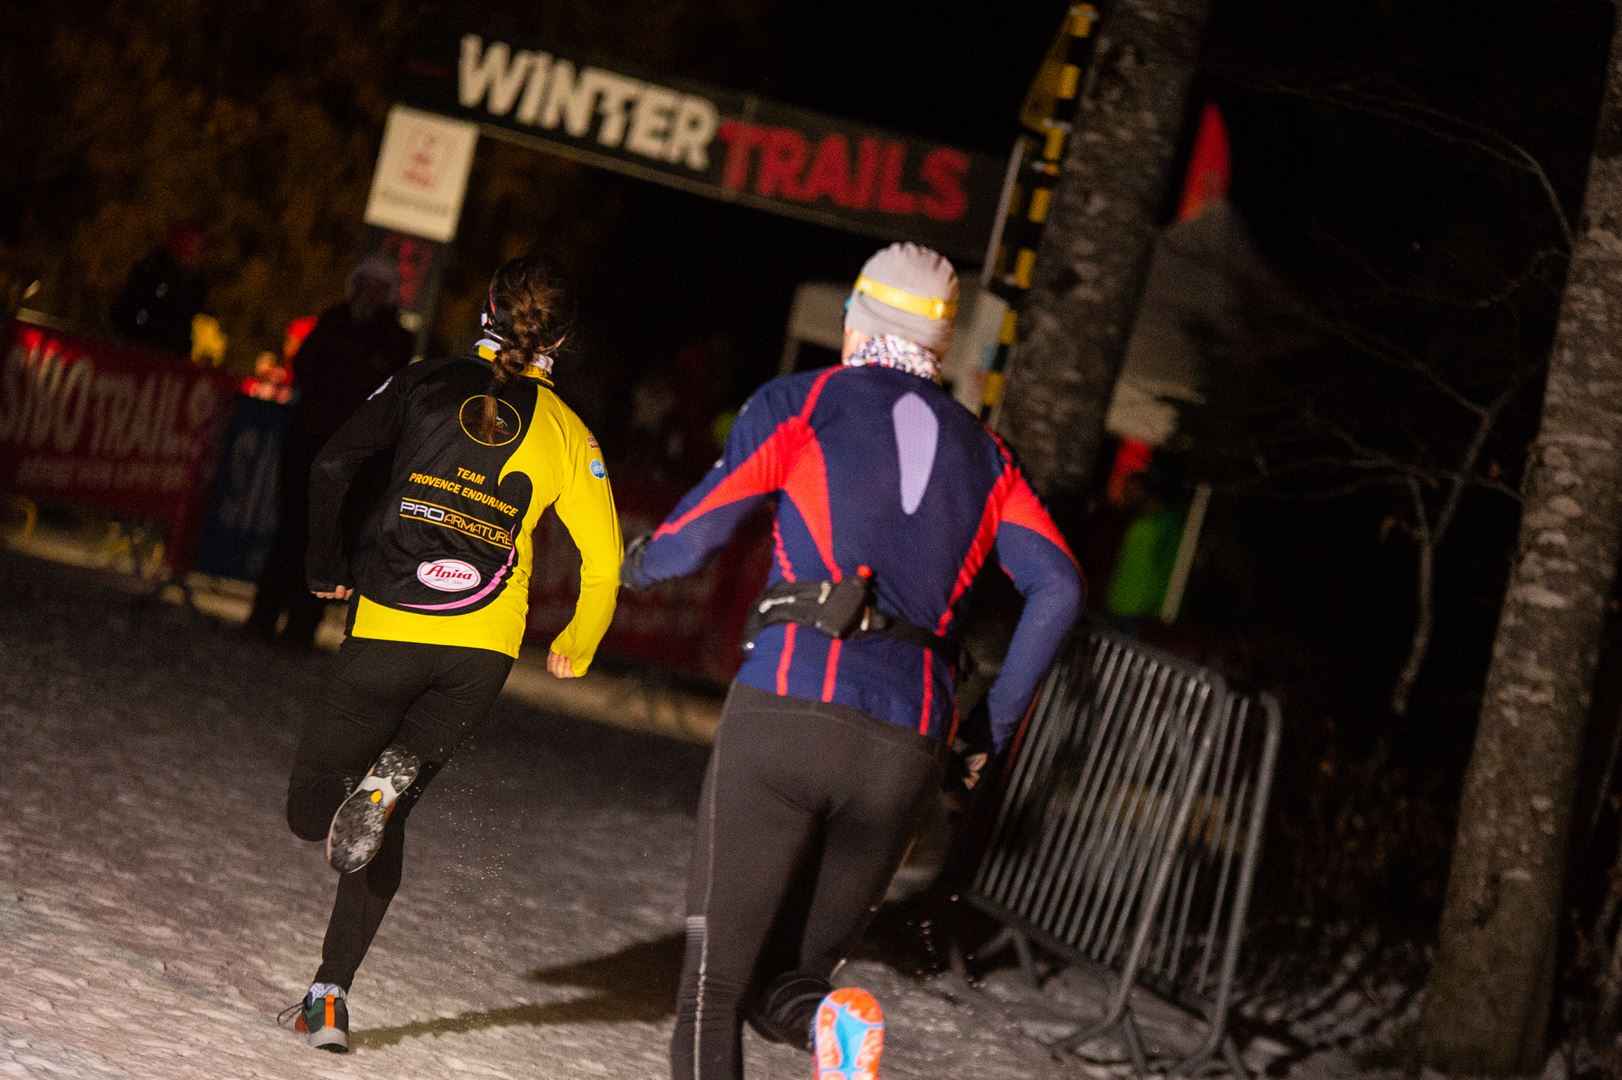 winter sibo trail 2020 HD aufildeslumieres 0020 - RESULTATS ET PHOTOS DU WINTER SIBOTRAIL LANS EN VERCORS (07/03/2020)